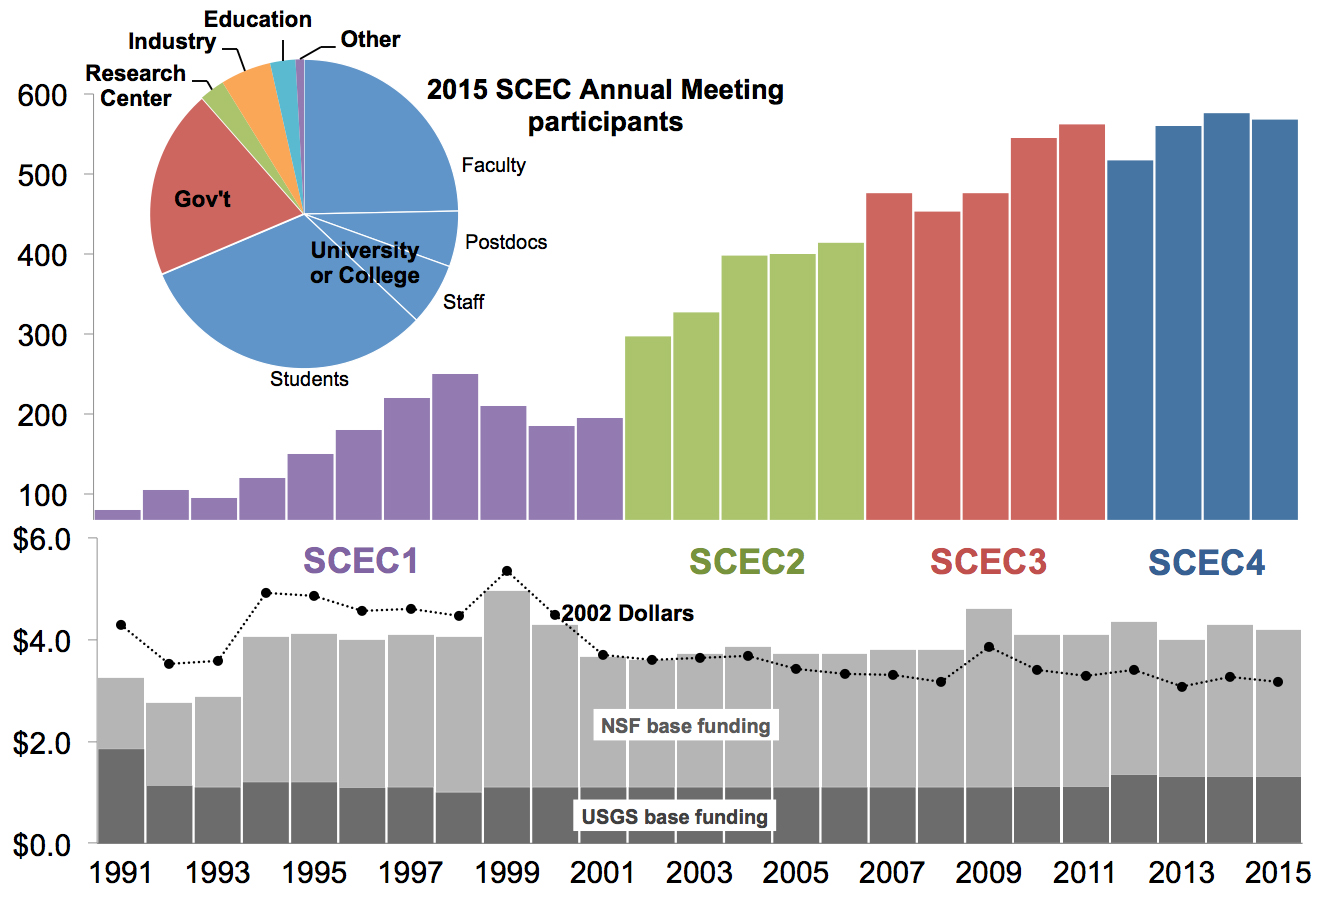 scec annual meeting participation upper bar chart shows registrants at the scec annual meeting 1991 2015 pie chart shows the demographic profile of 2015